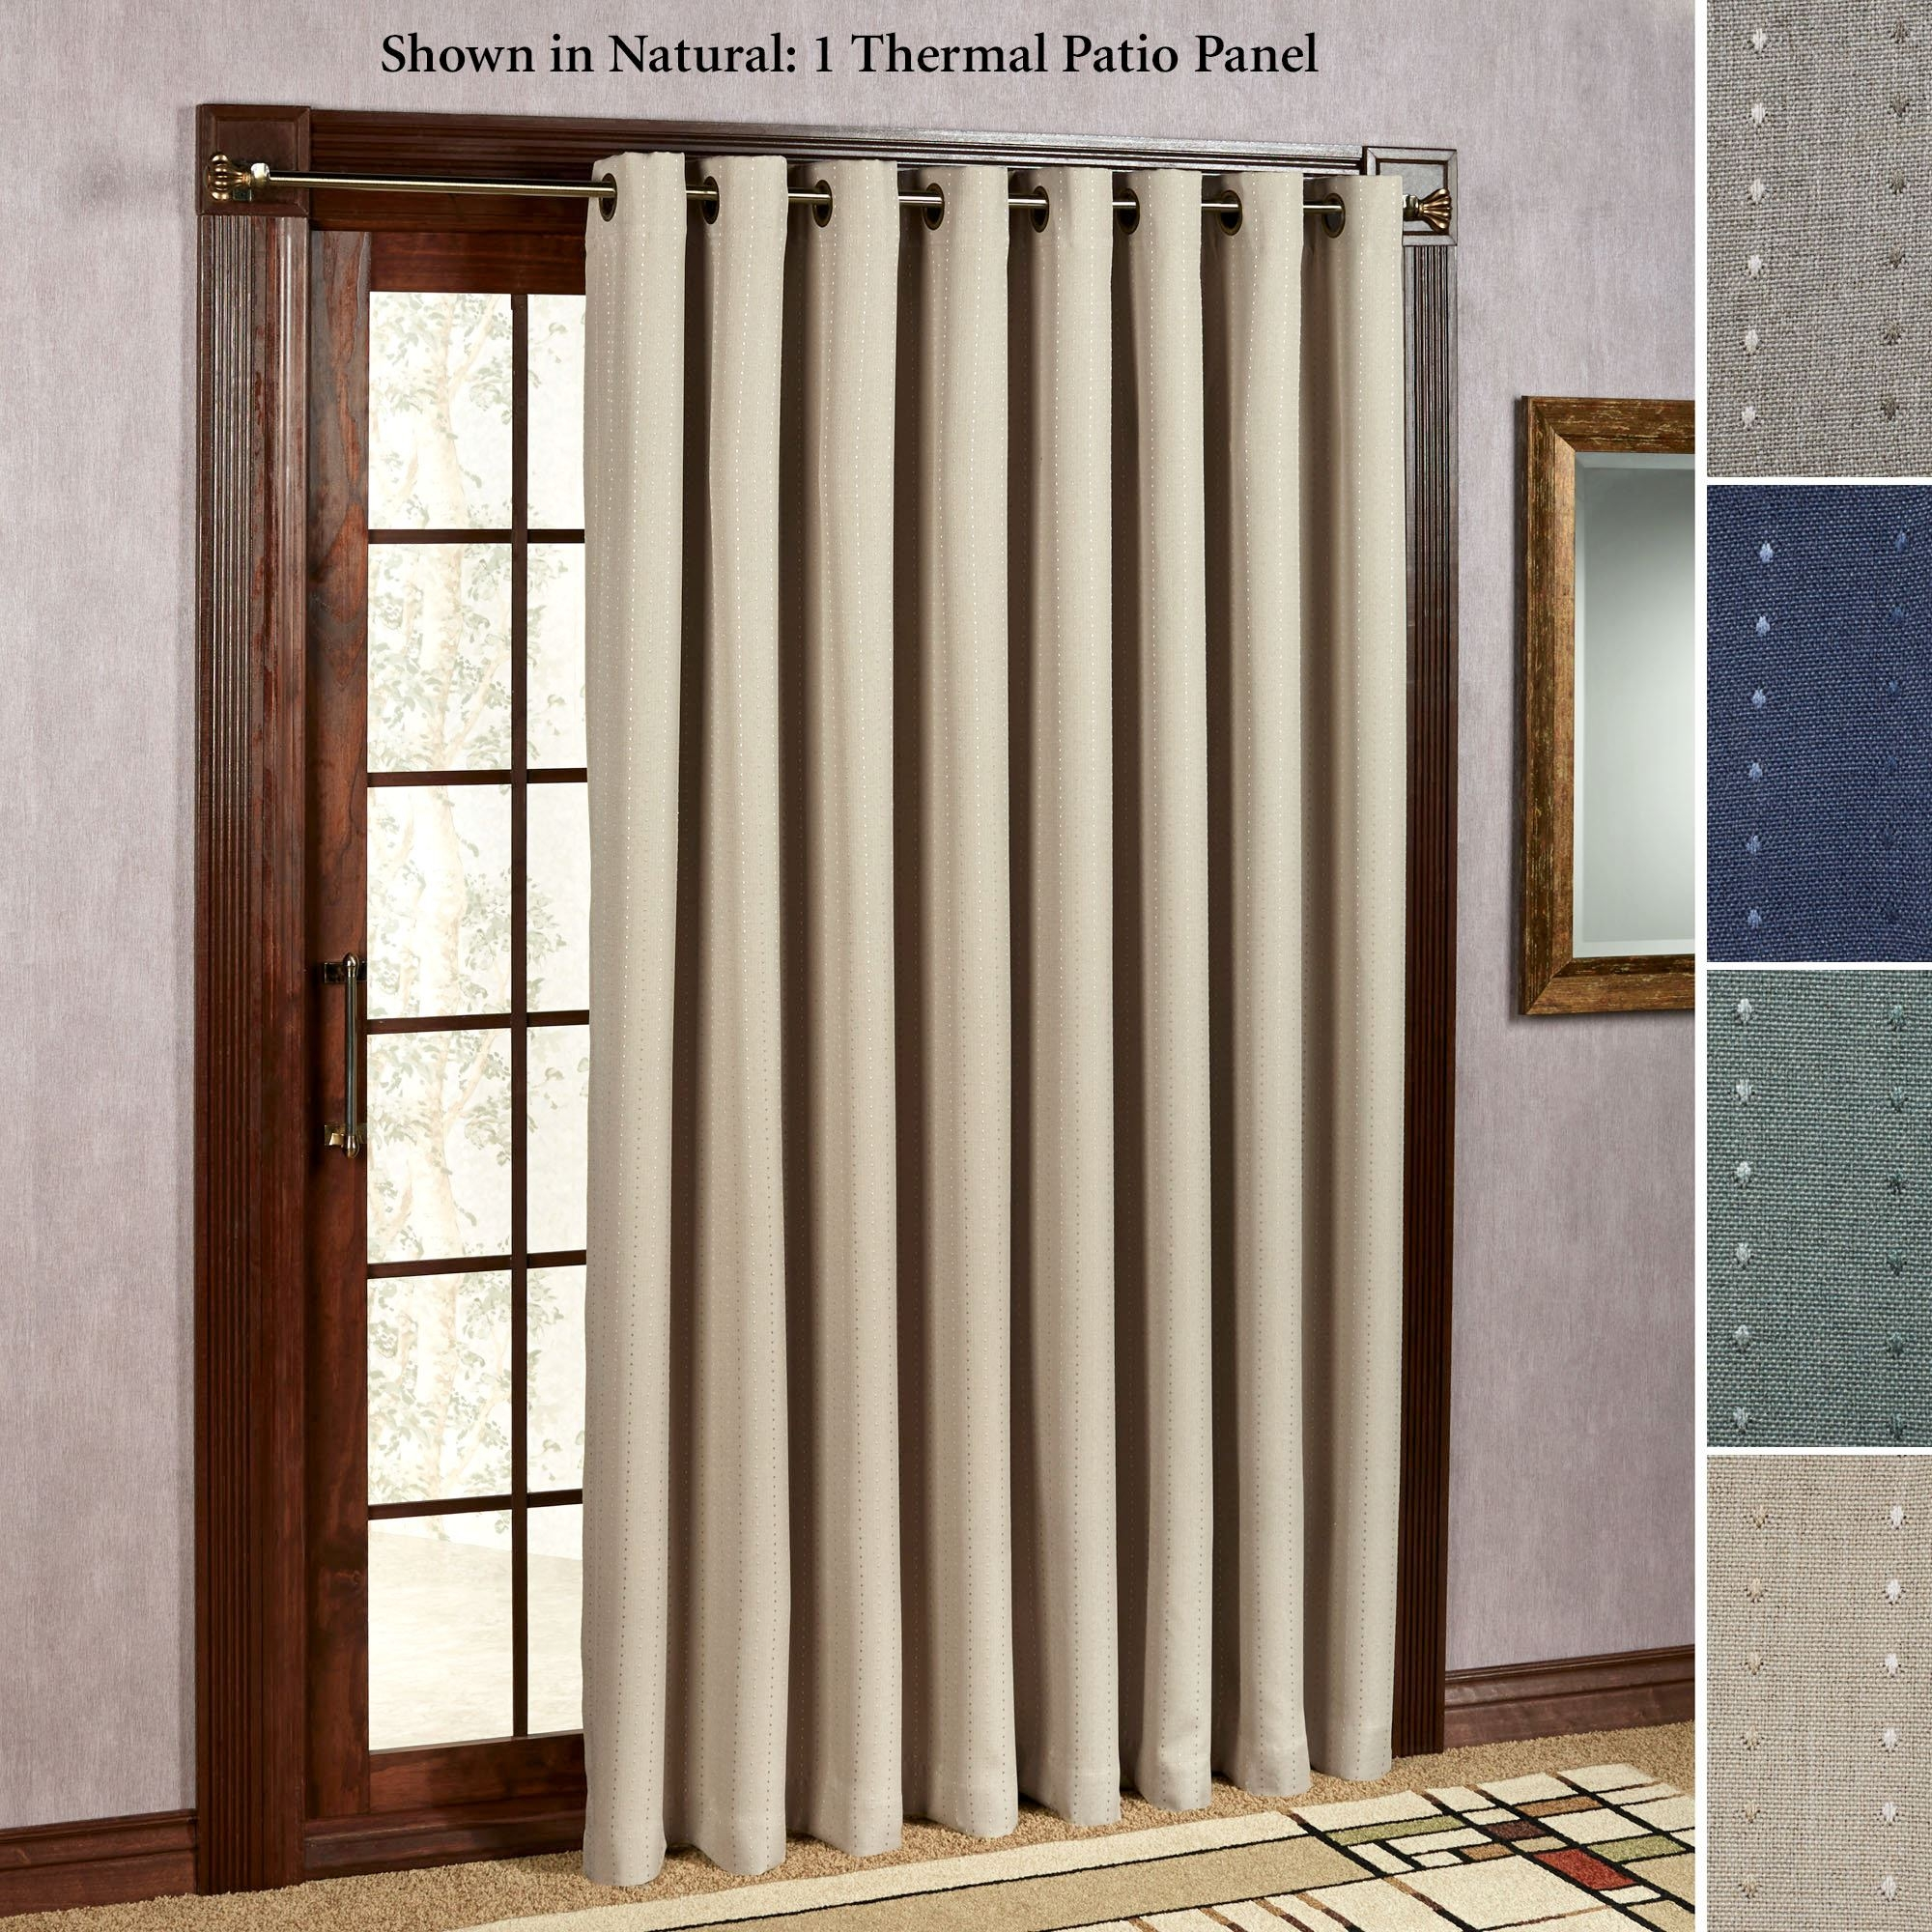 Thermal Drapes For Sliding Glass Doors2000 X 2000